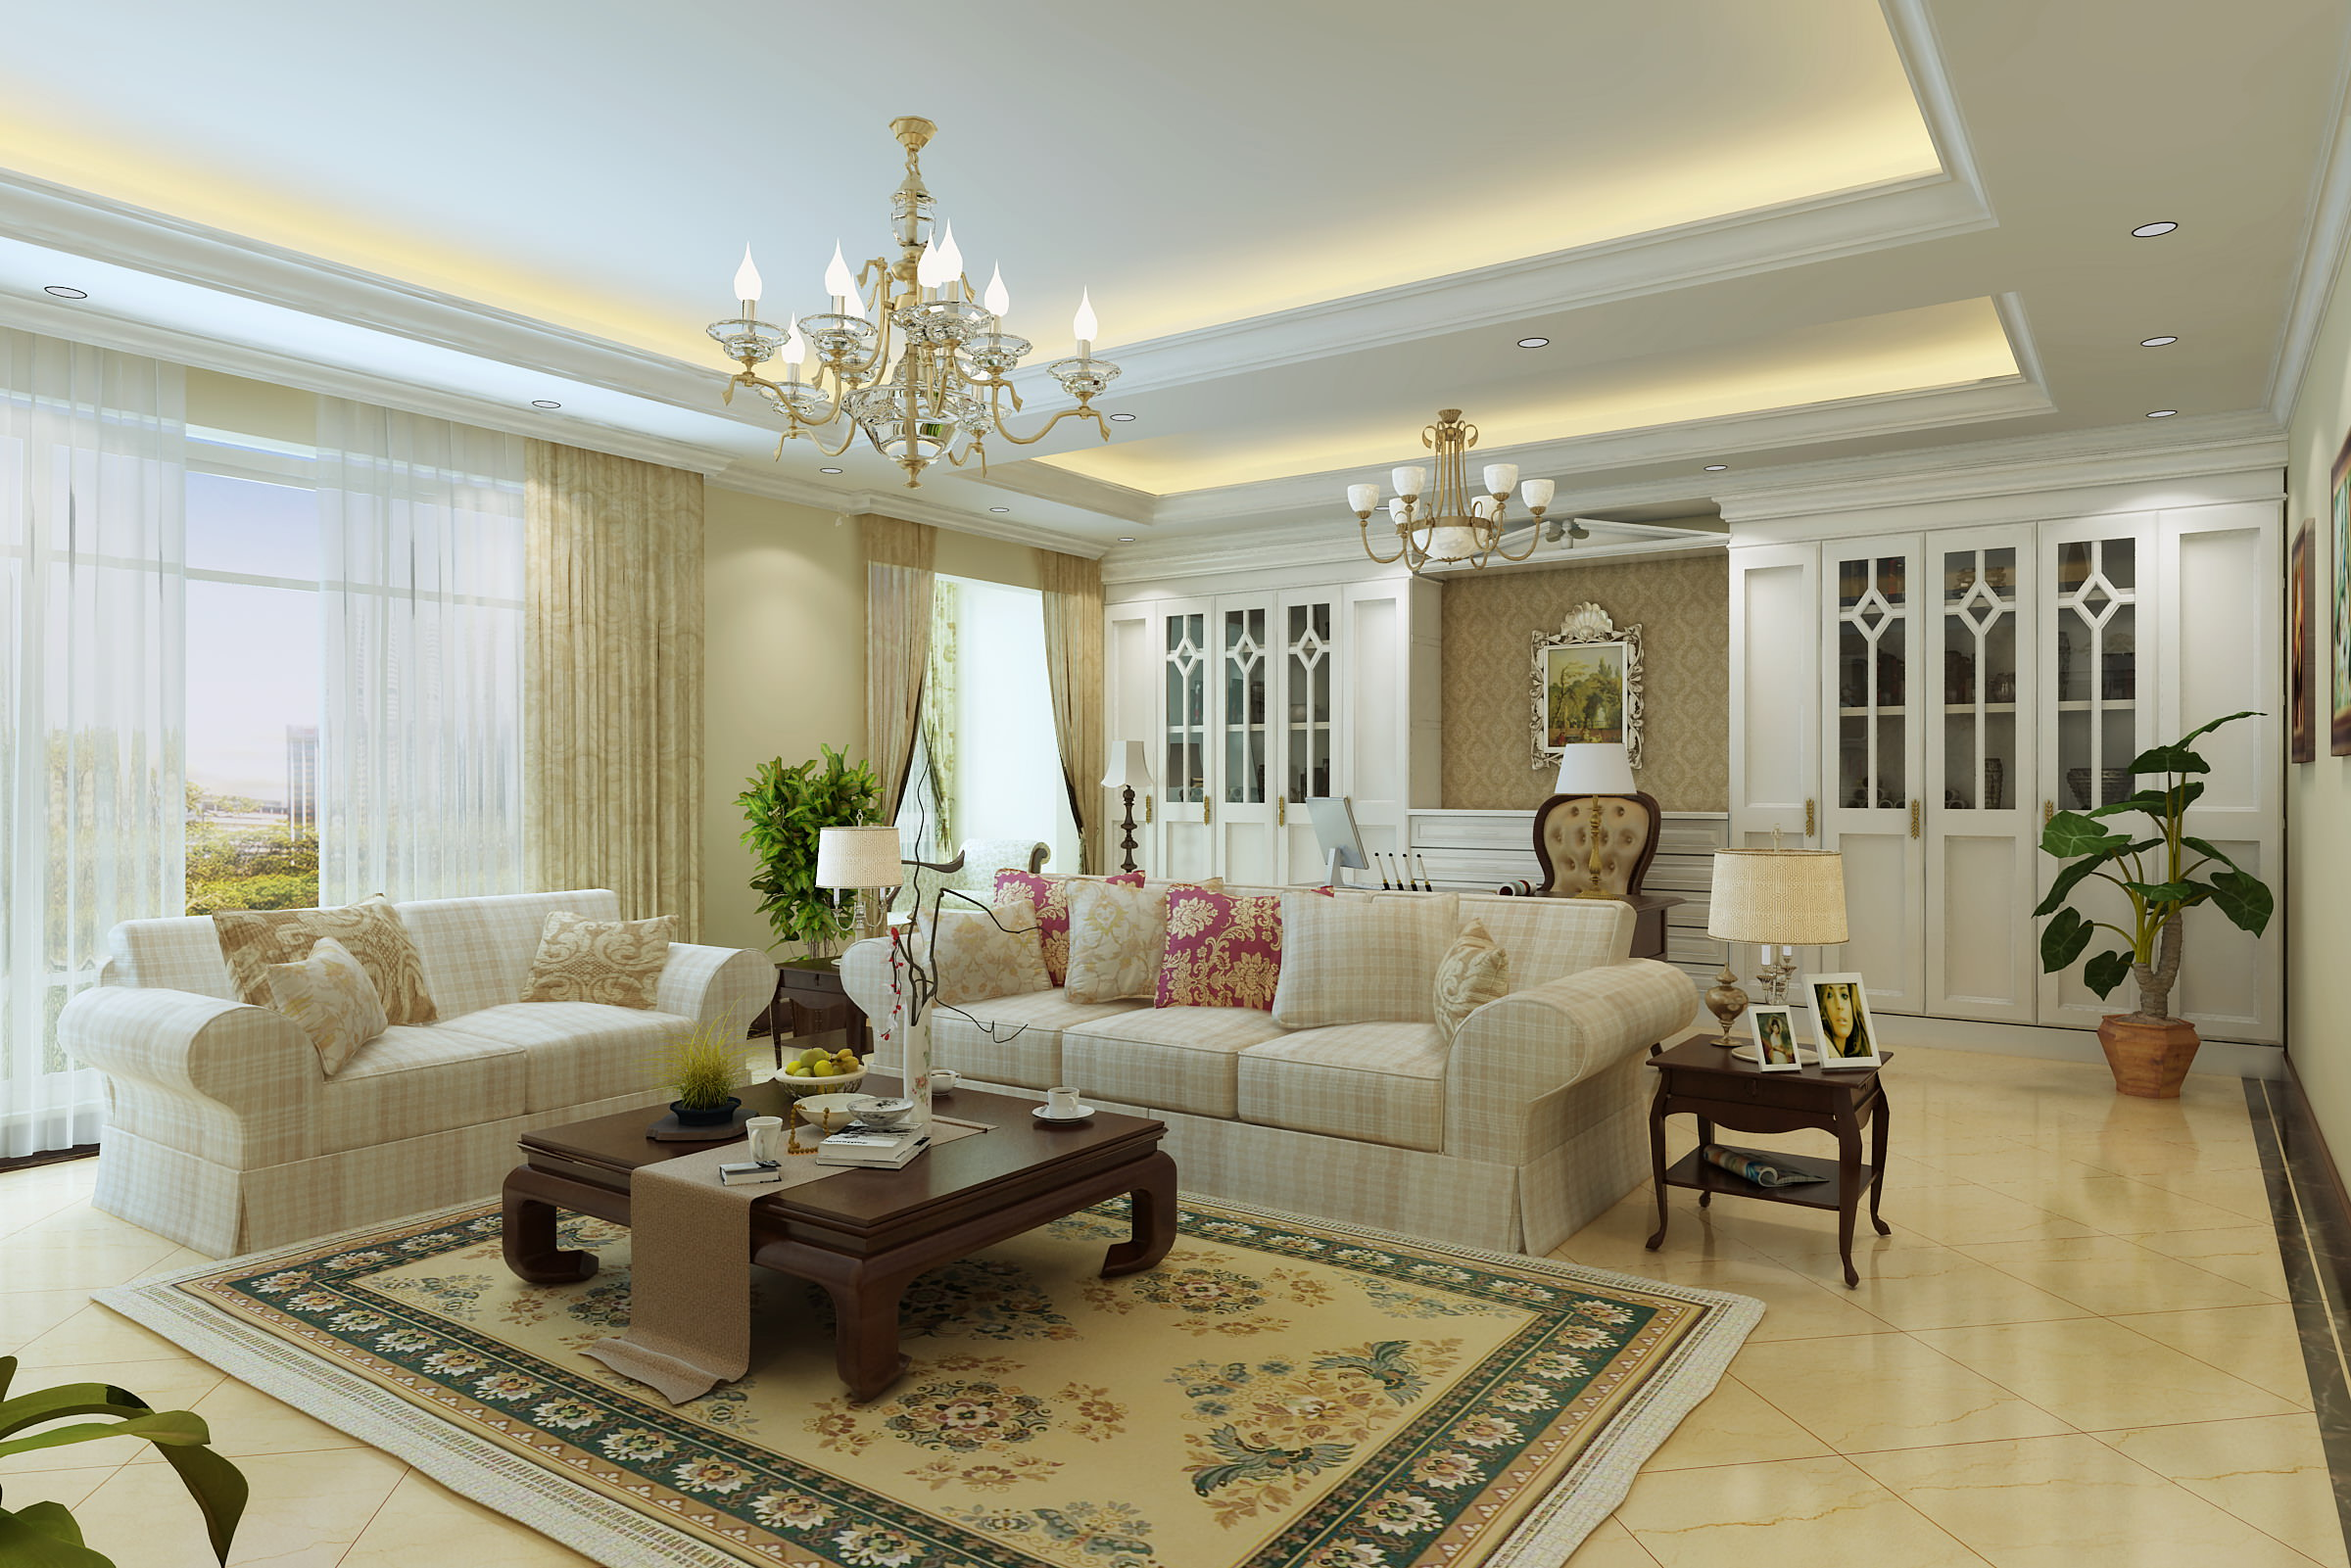 Living room with carpet and designer wall 3d model max for 3d living room planner